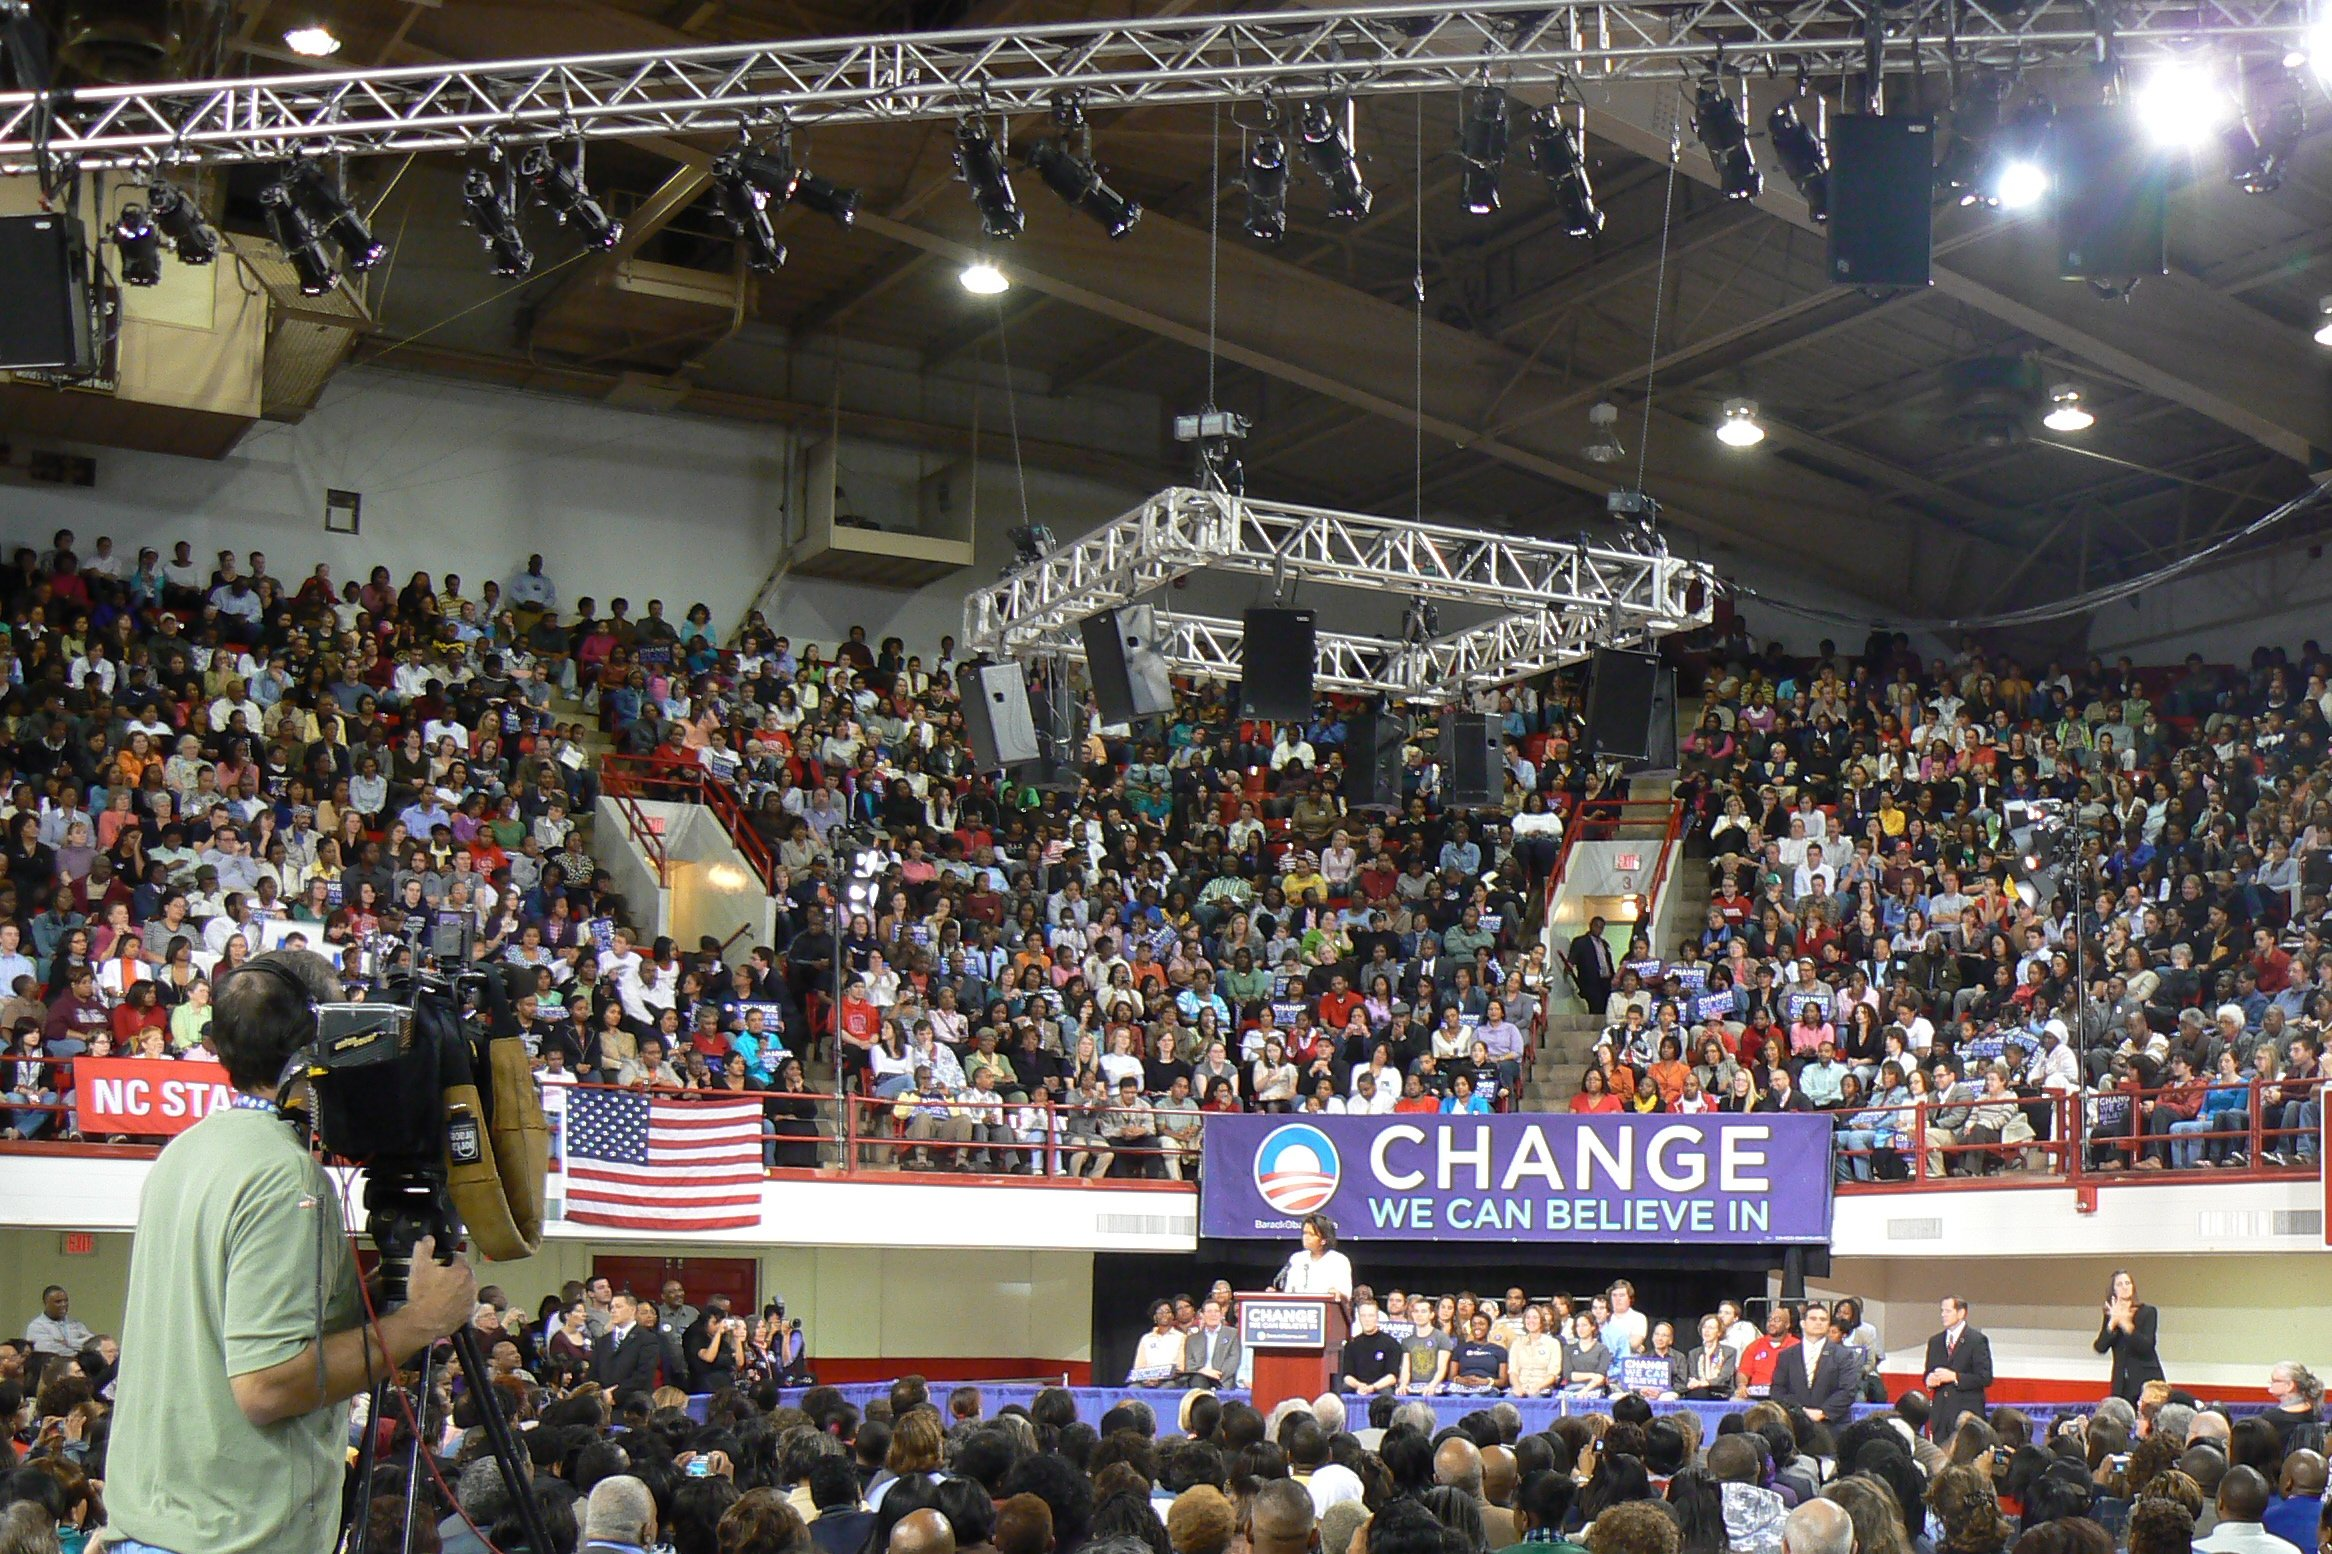 Basketball Arena Transformed for Political Event